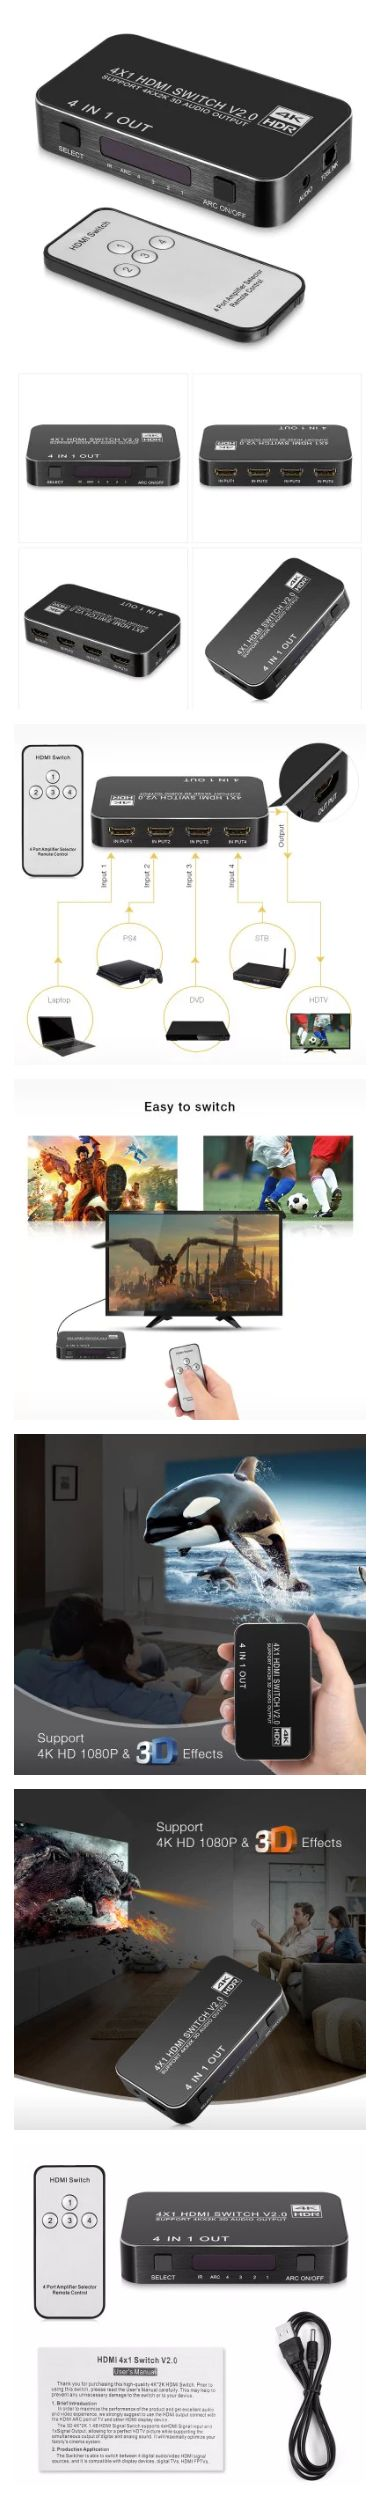 $17.49 HDMI 4 x 1 Switch Splitter Remote Control Features: - 4 x 1 design Compatible with Xbox, PS3, PS4, DVD, Blu-ray player, STB, laptop, etc. You can enjoy multiple displays of your devices on your TV screen, no need to plug in or out cord frequently, which is bad to it  - MHL / HDMI mode It supports MHL and HDMI two working modes, which means you can connect mobile phone with HDTV to have entertainment, at the same time, two modes are combined in one input, which can effectively reduce